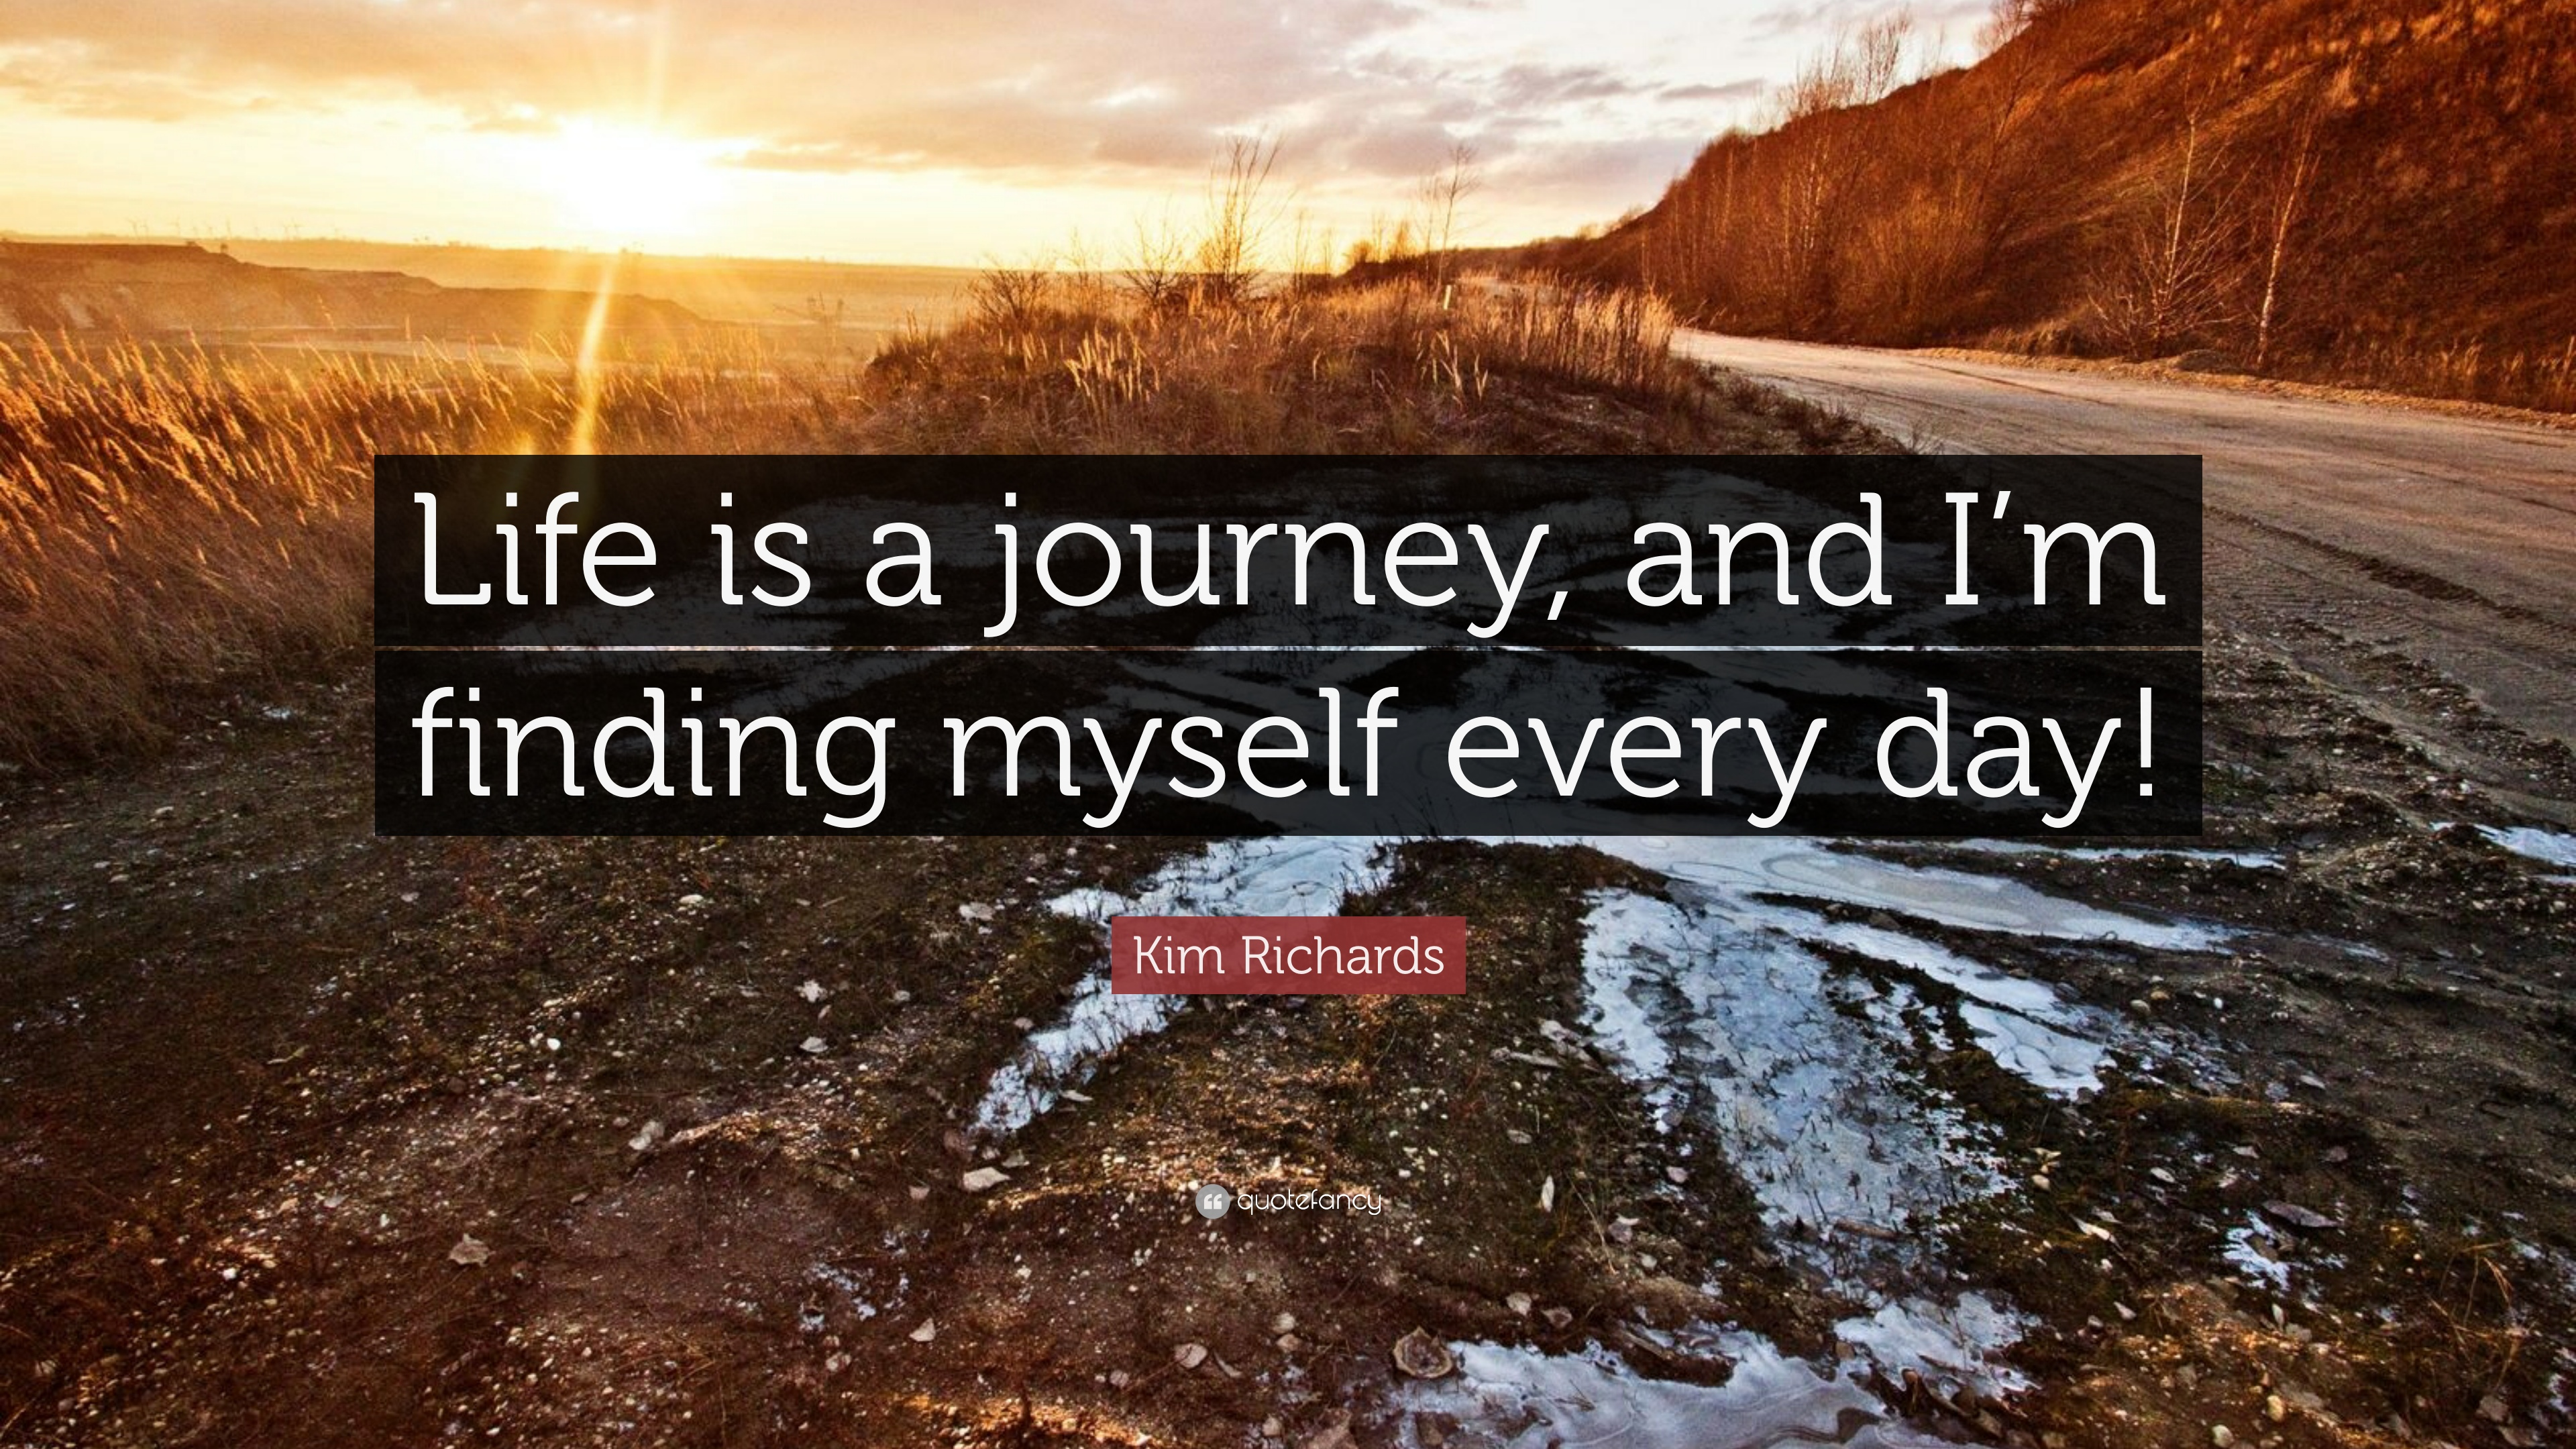 Kim Richards Quote Life Is A Journey And I M Finding Myself Every Day 7 Wallpapers Quotefancy